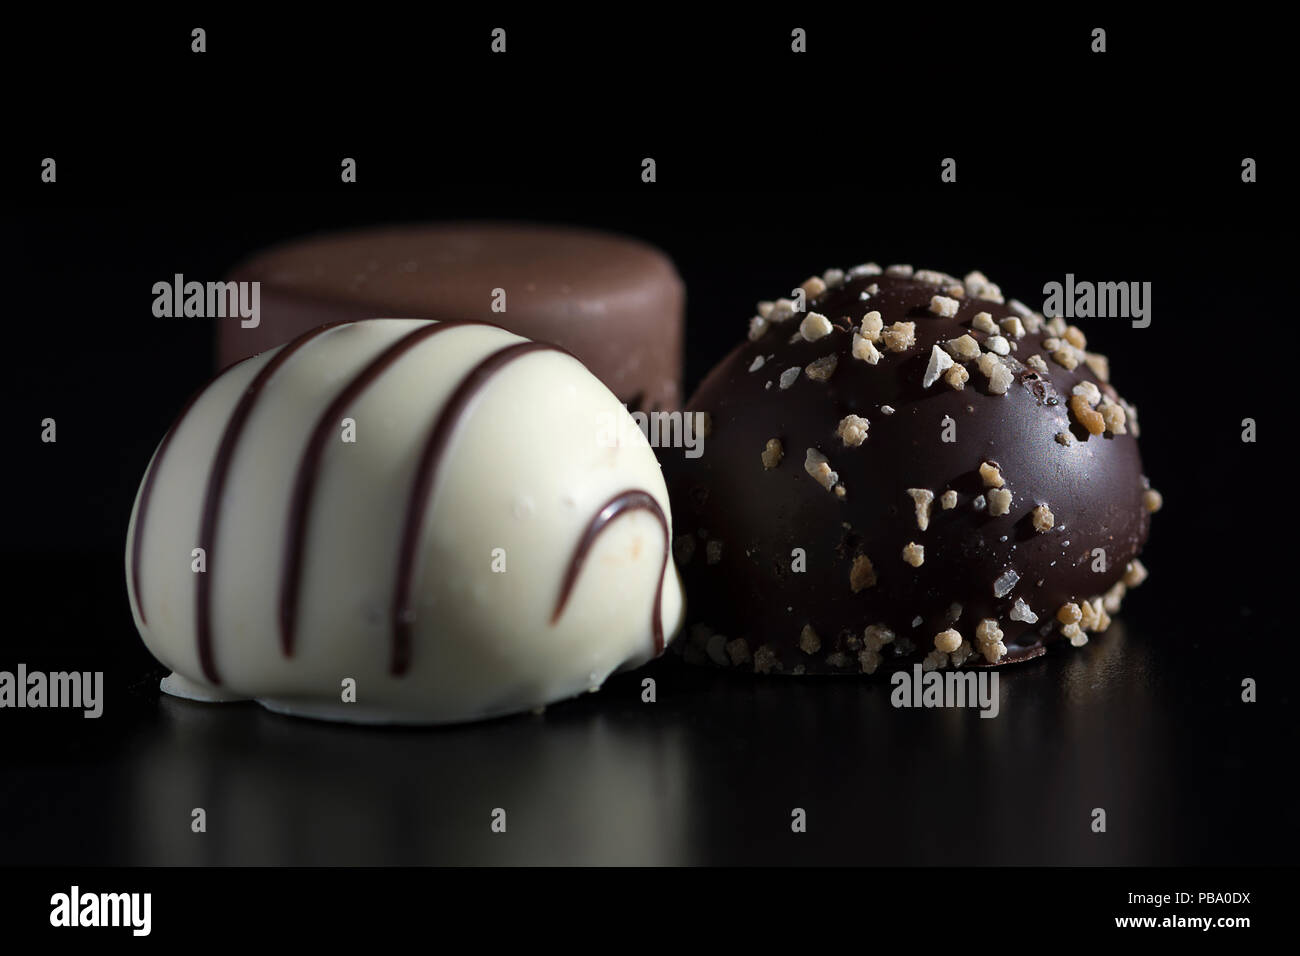 Close up of three chocolate bonbons, white, dark and milk chocolate. Sweet, calorie-rich and energy-rich food with unhealthy and fattening qualities Stock Photo